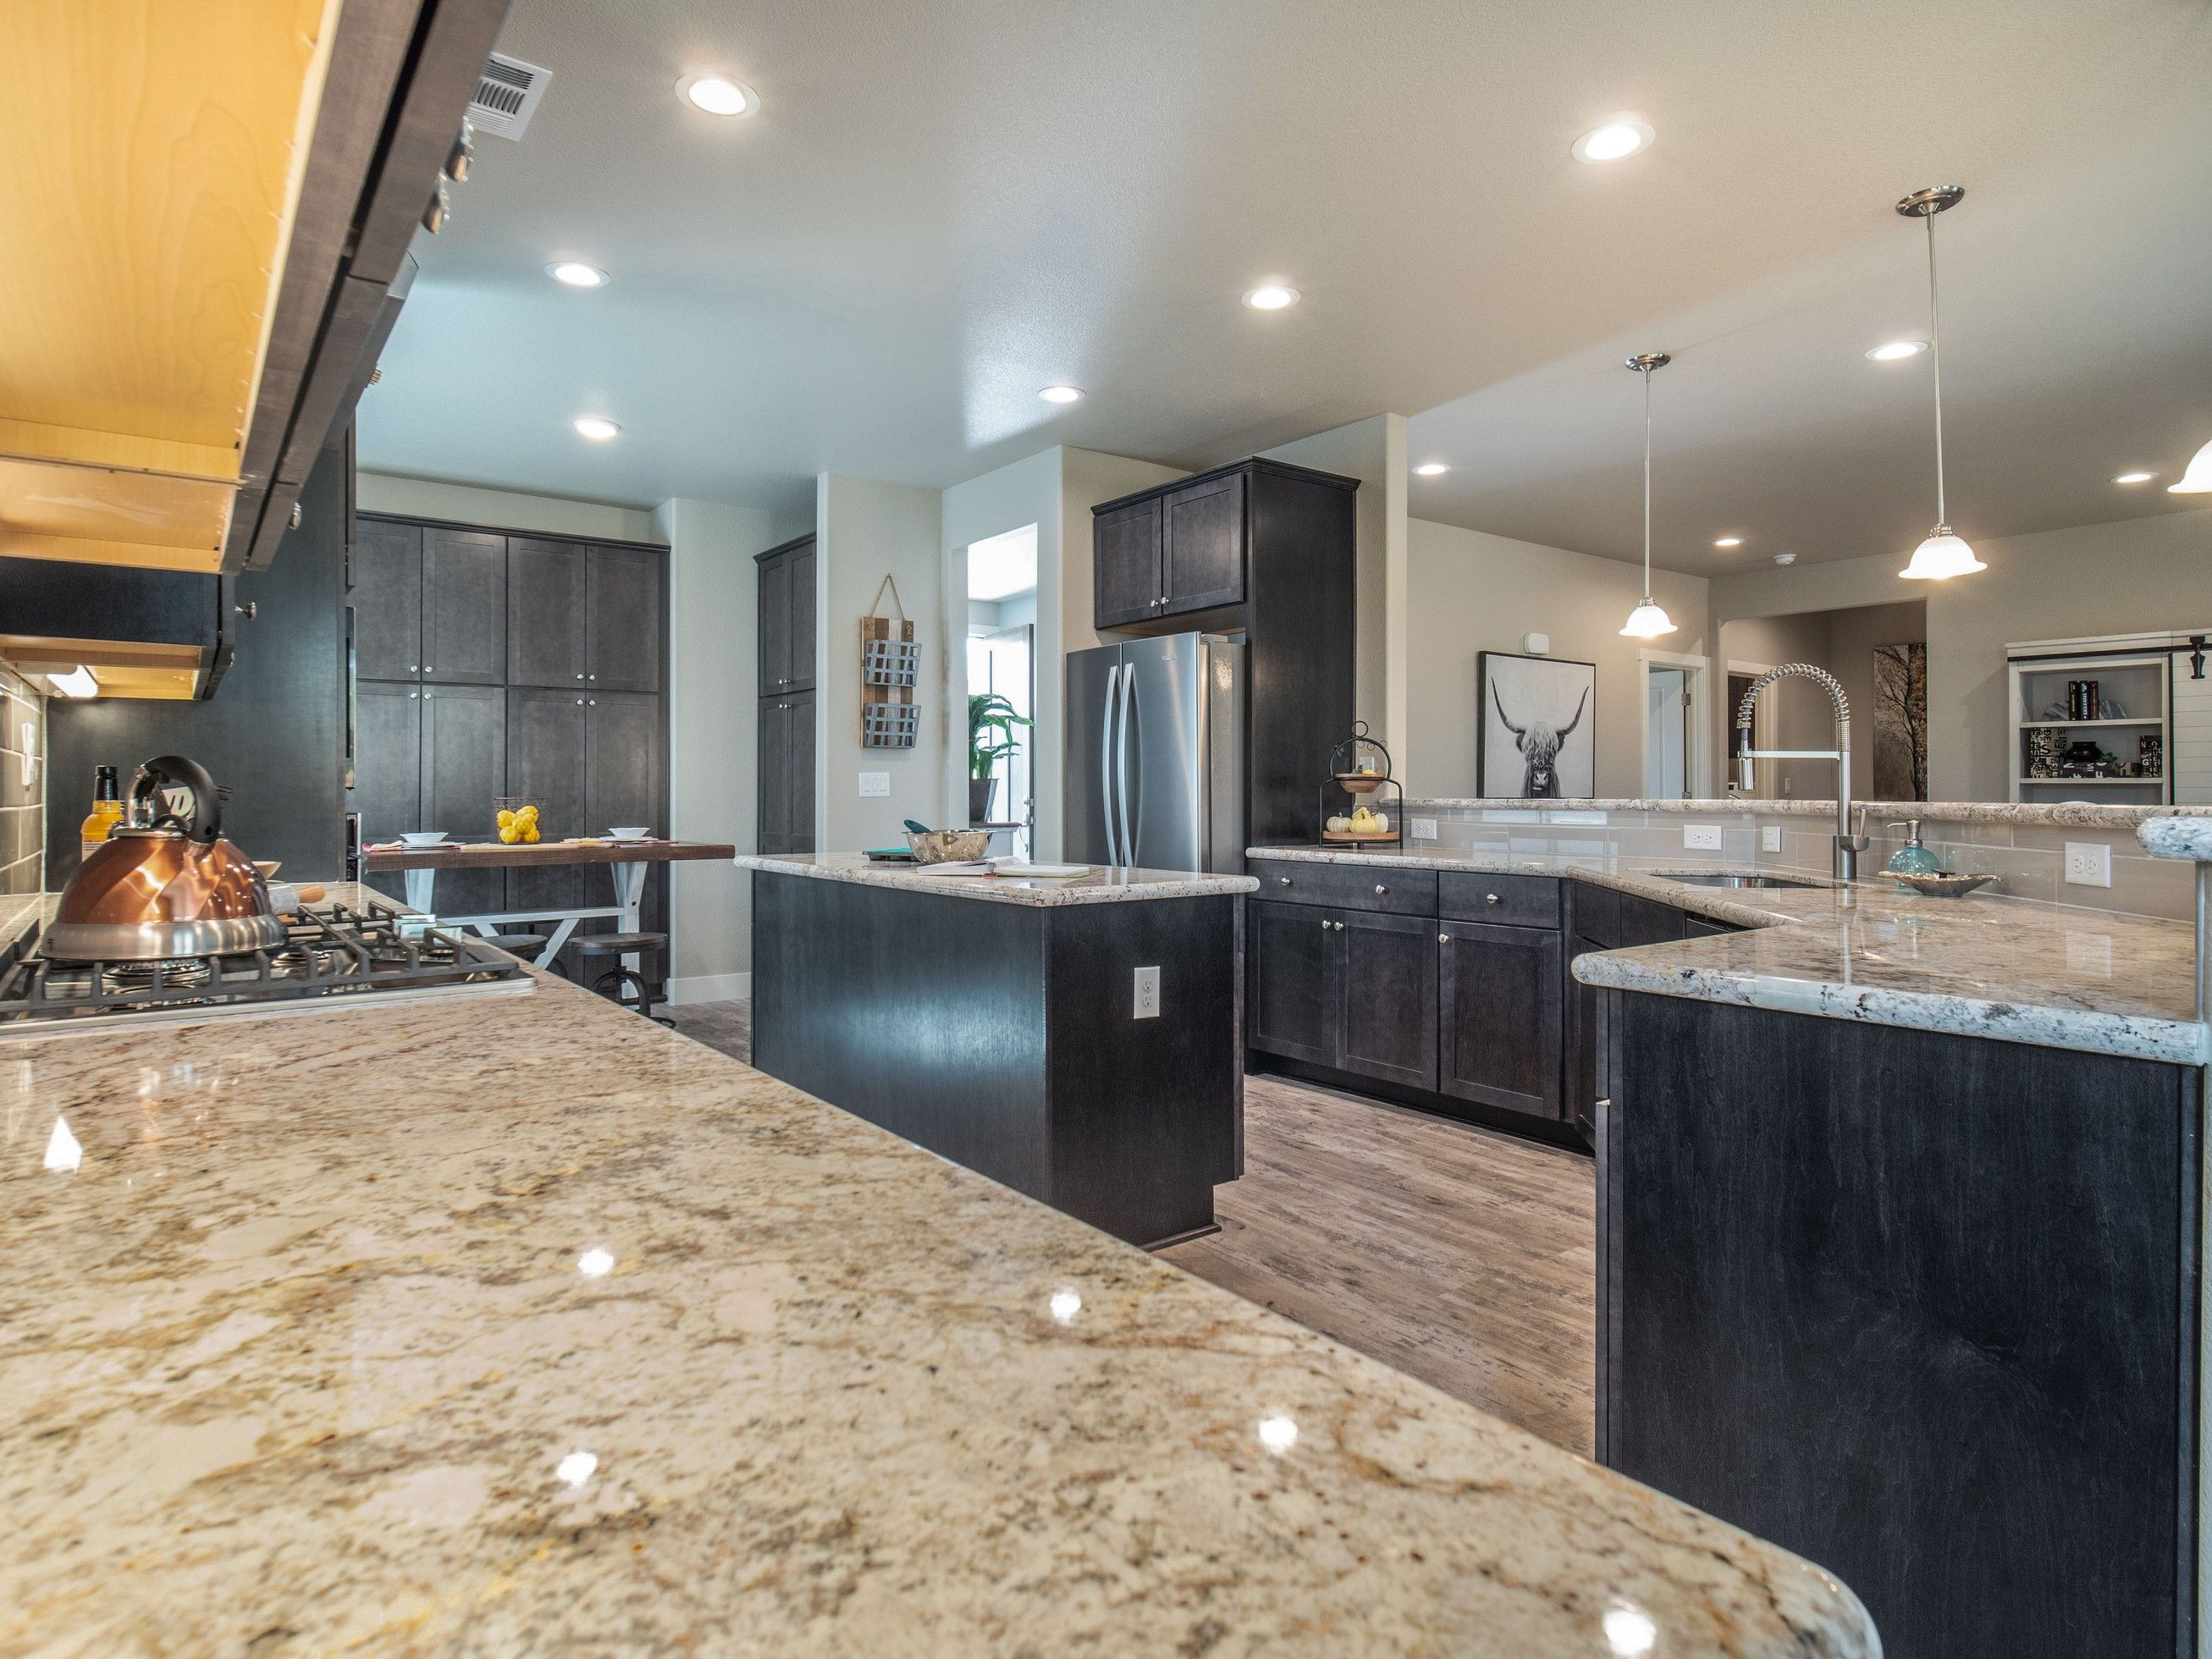 Kitchen featured in the Primrose By Carter Hill Homes in Reno, NV